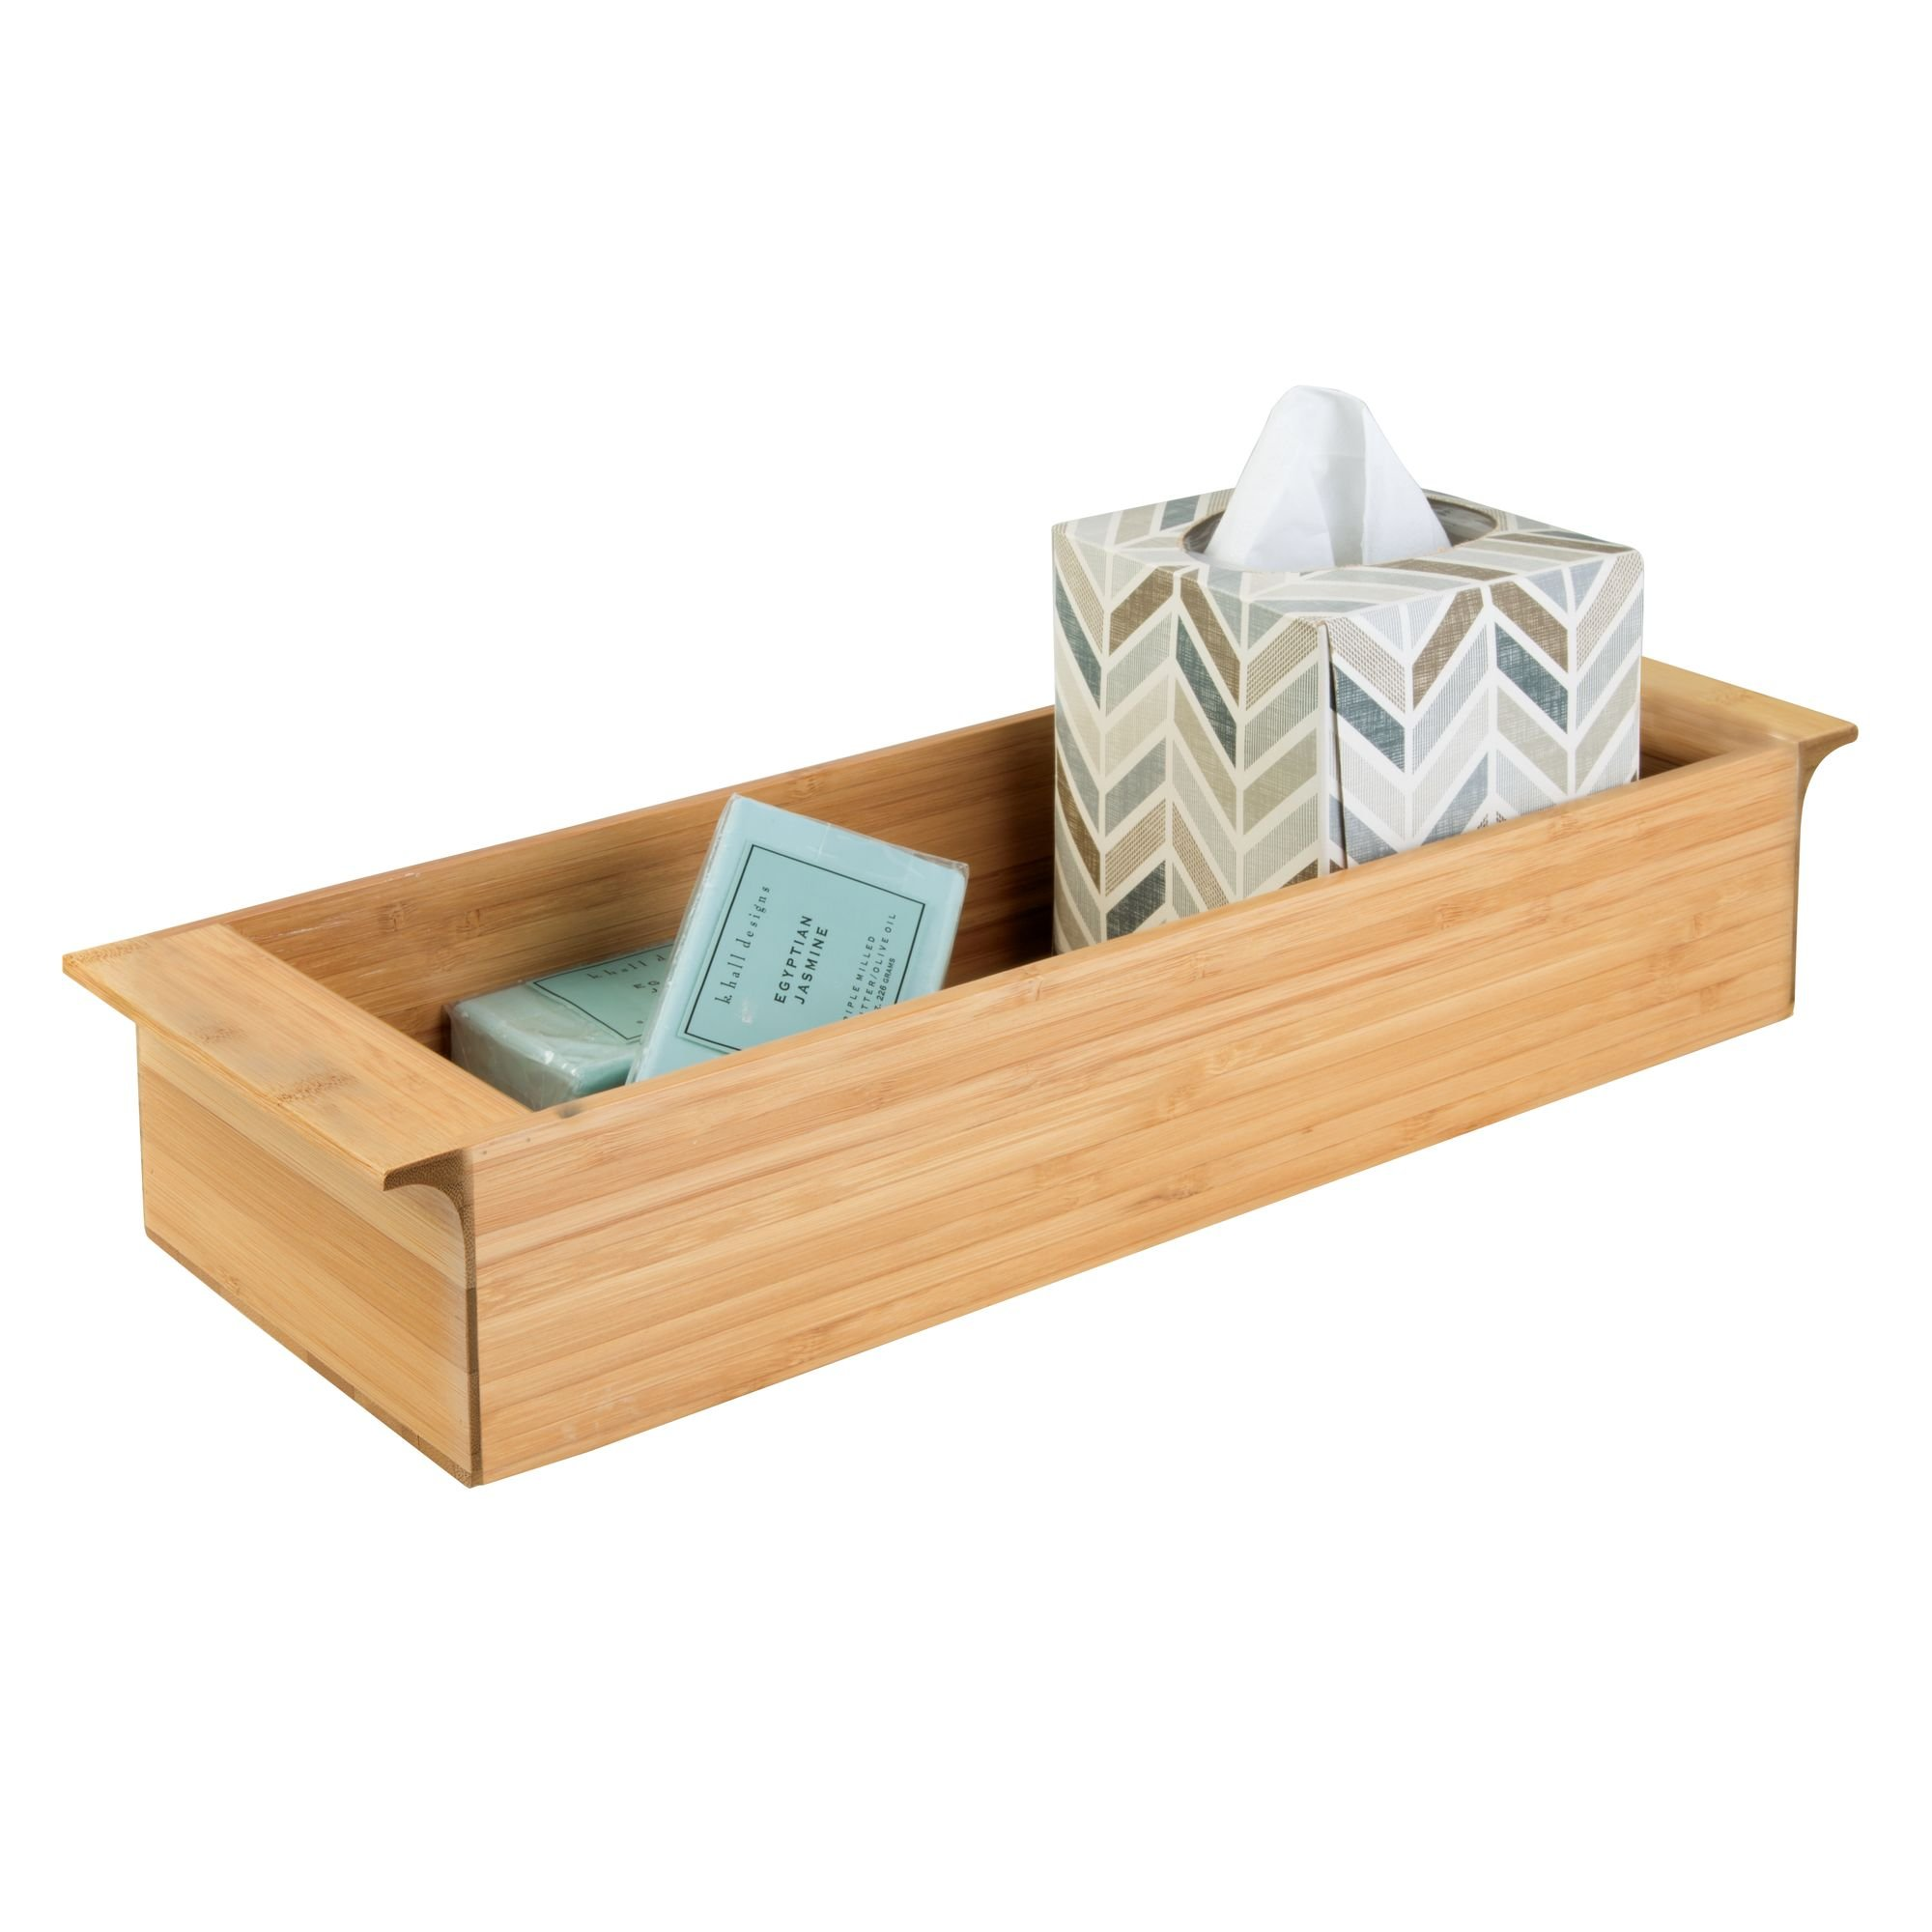 """iDesign Formbu Wood Tank Top Storage Handles, Wooden Organizer for Tissues, Candles, Soap, Hand Towels, Toilet Paper, 16.15"""" x 6"""" x 3"""", Deep Tray"""